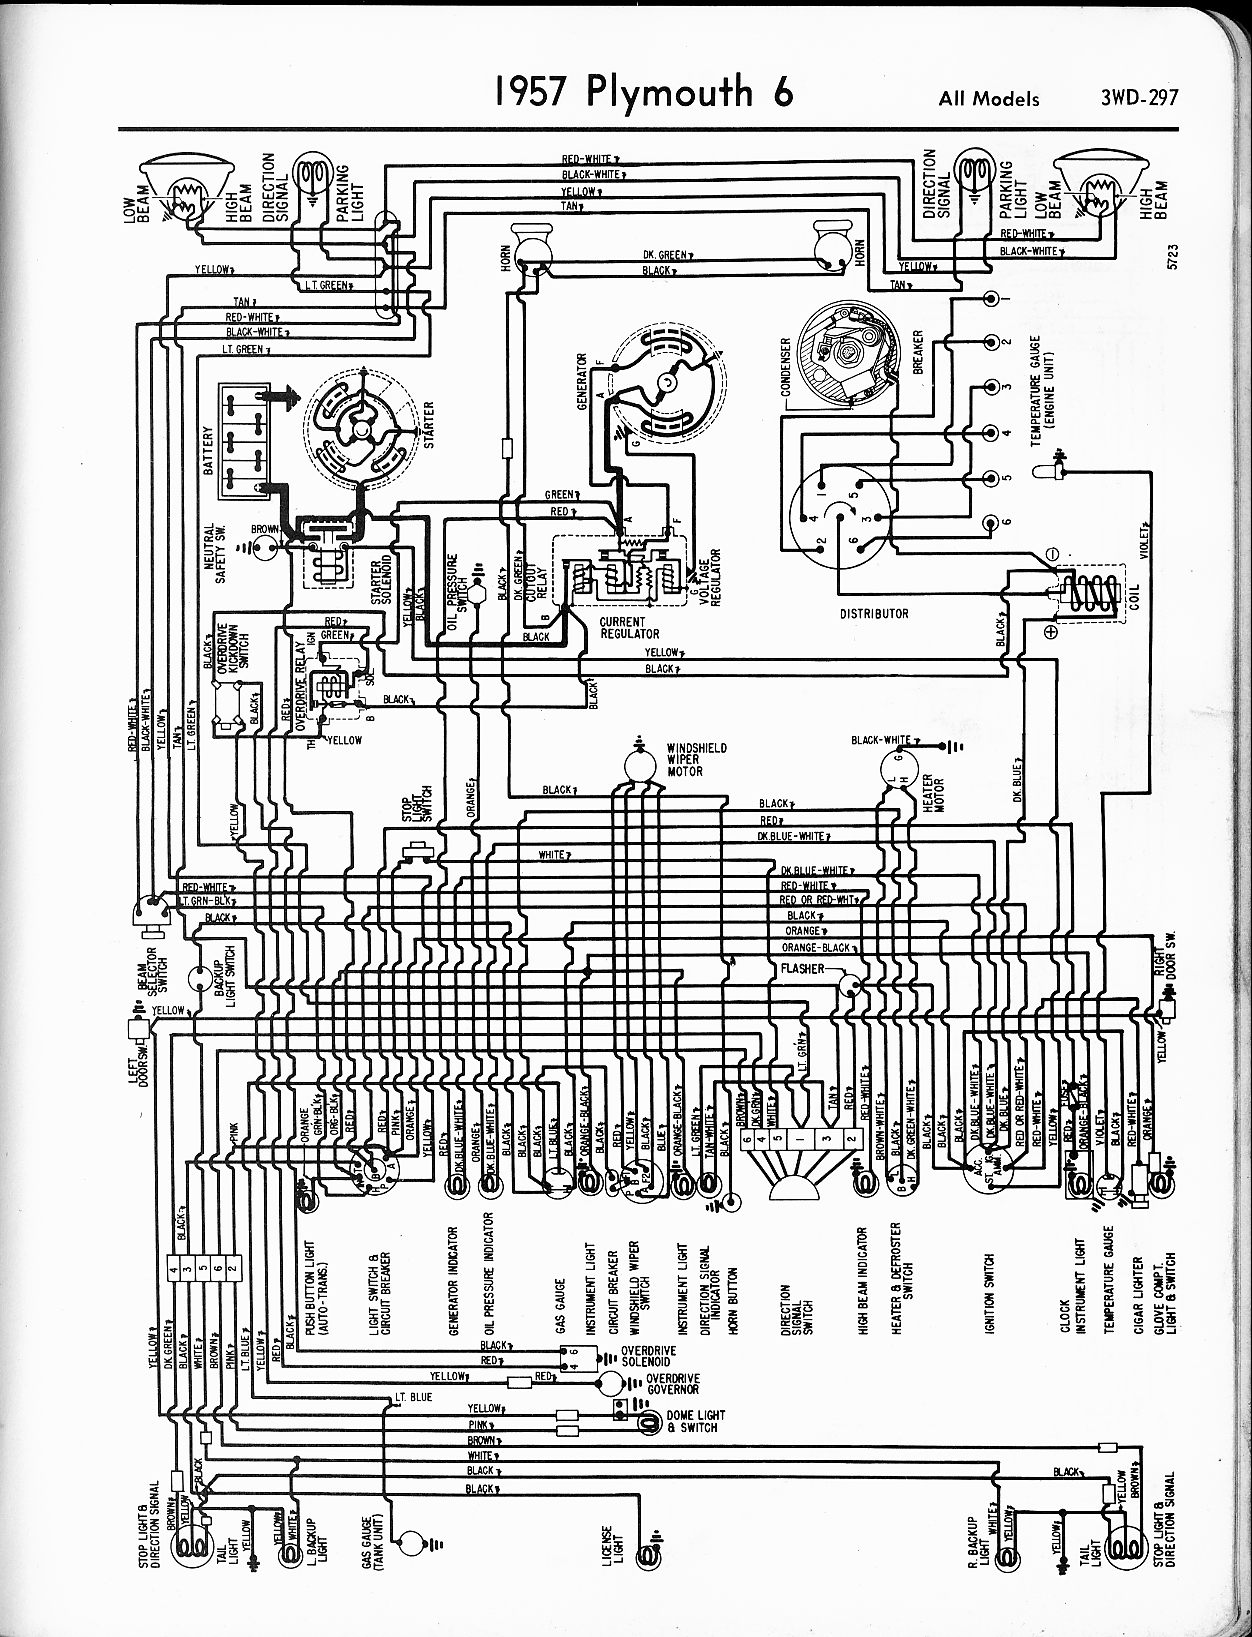 1950 plymouth engine wiring diagram free image wiring diagram wire rh sellfie co